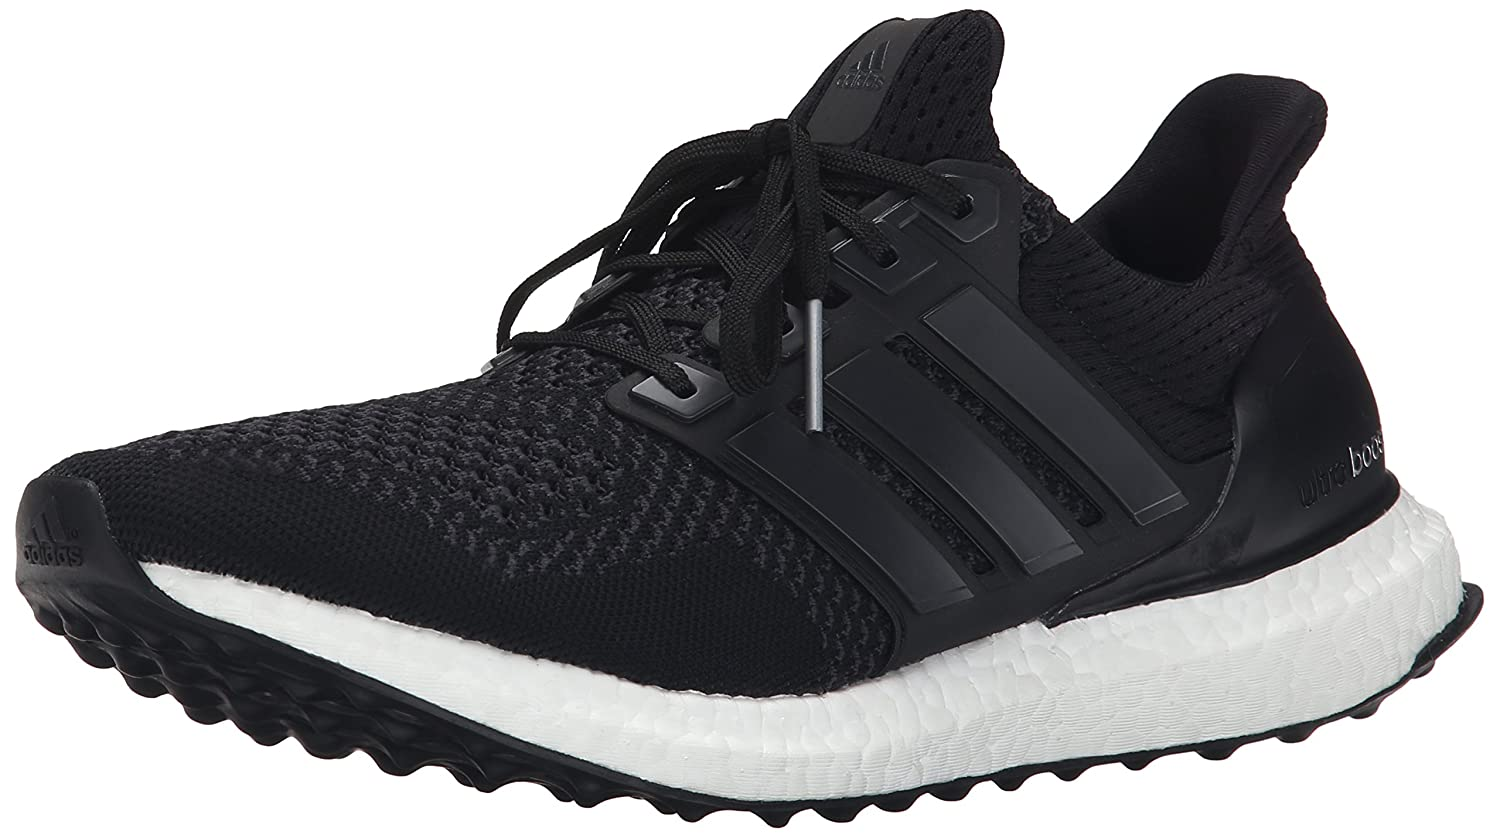 adidas Performance Men's Ultra Boost M Running Shoe B00WW7LO0E 9 D(M) US|Black/Black/Solar Yellow